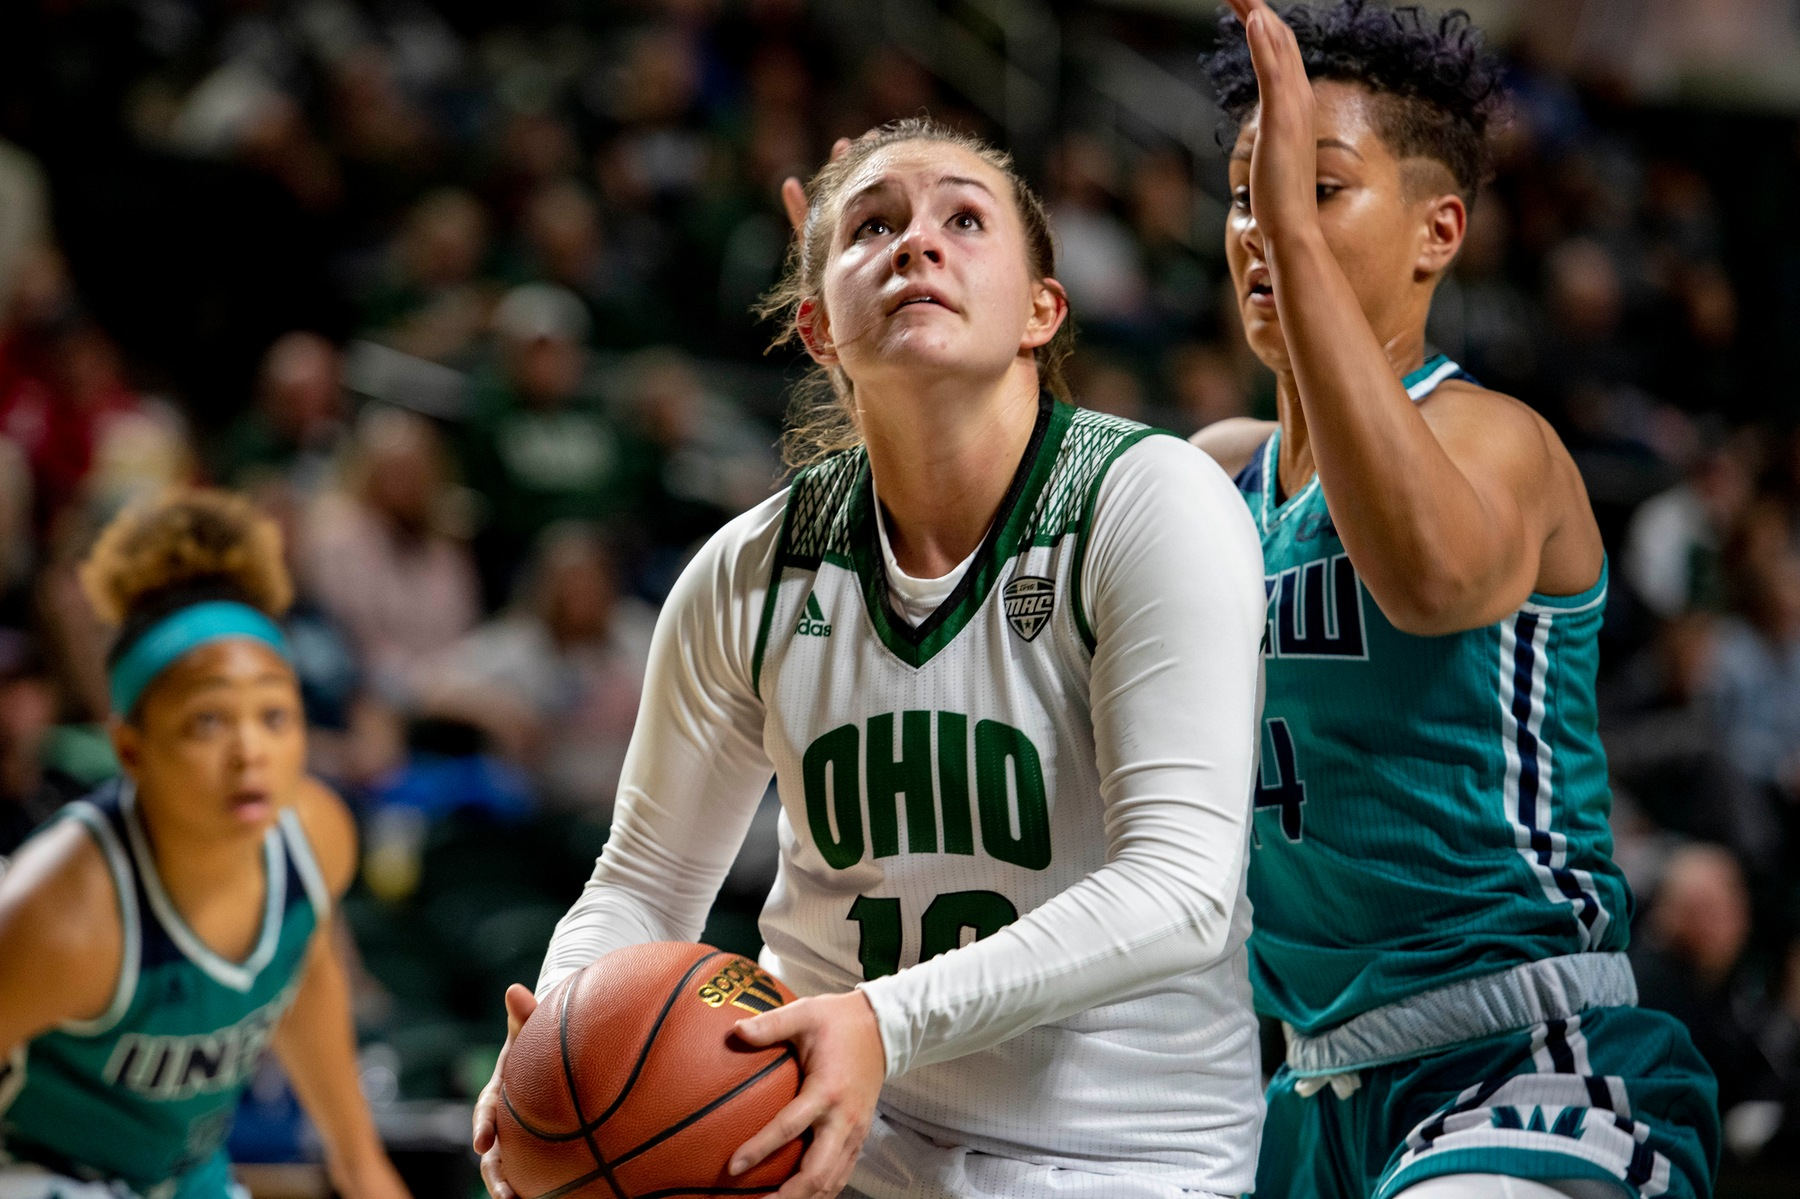 Ohio Women's Basketball's Doseck Named MAC East Player of the Week